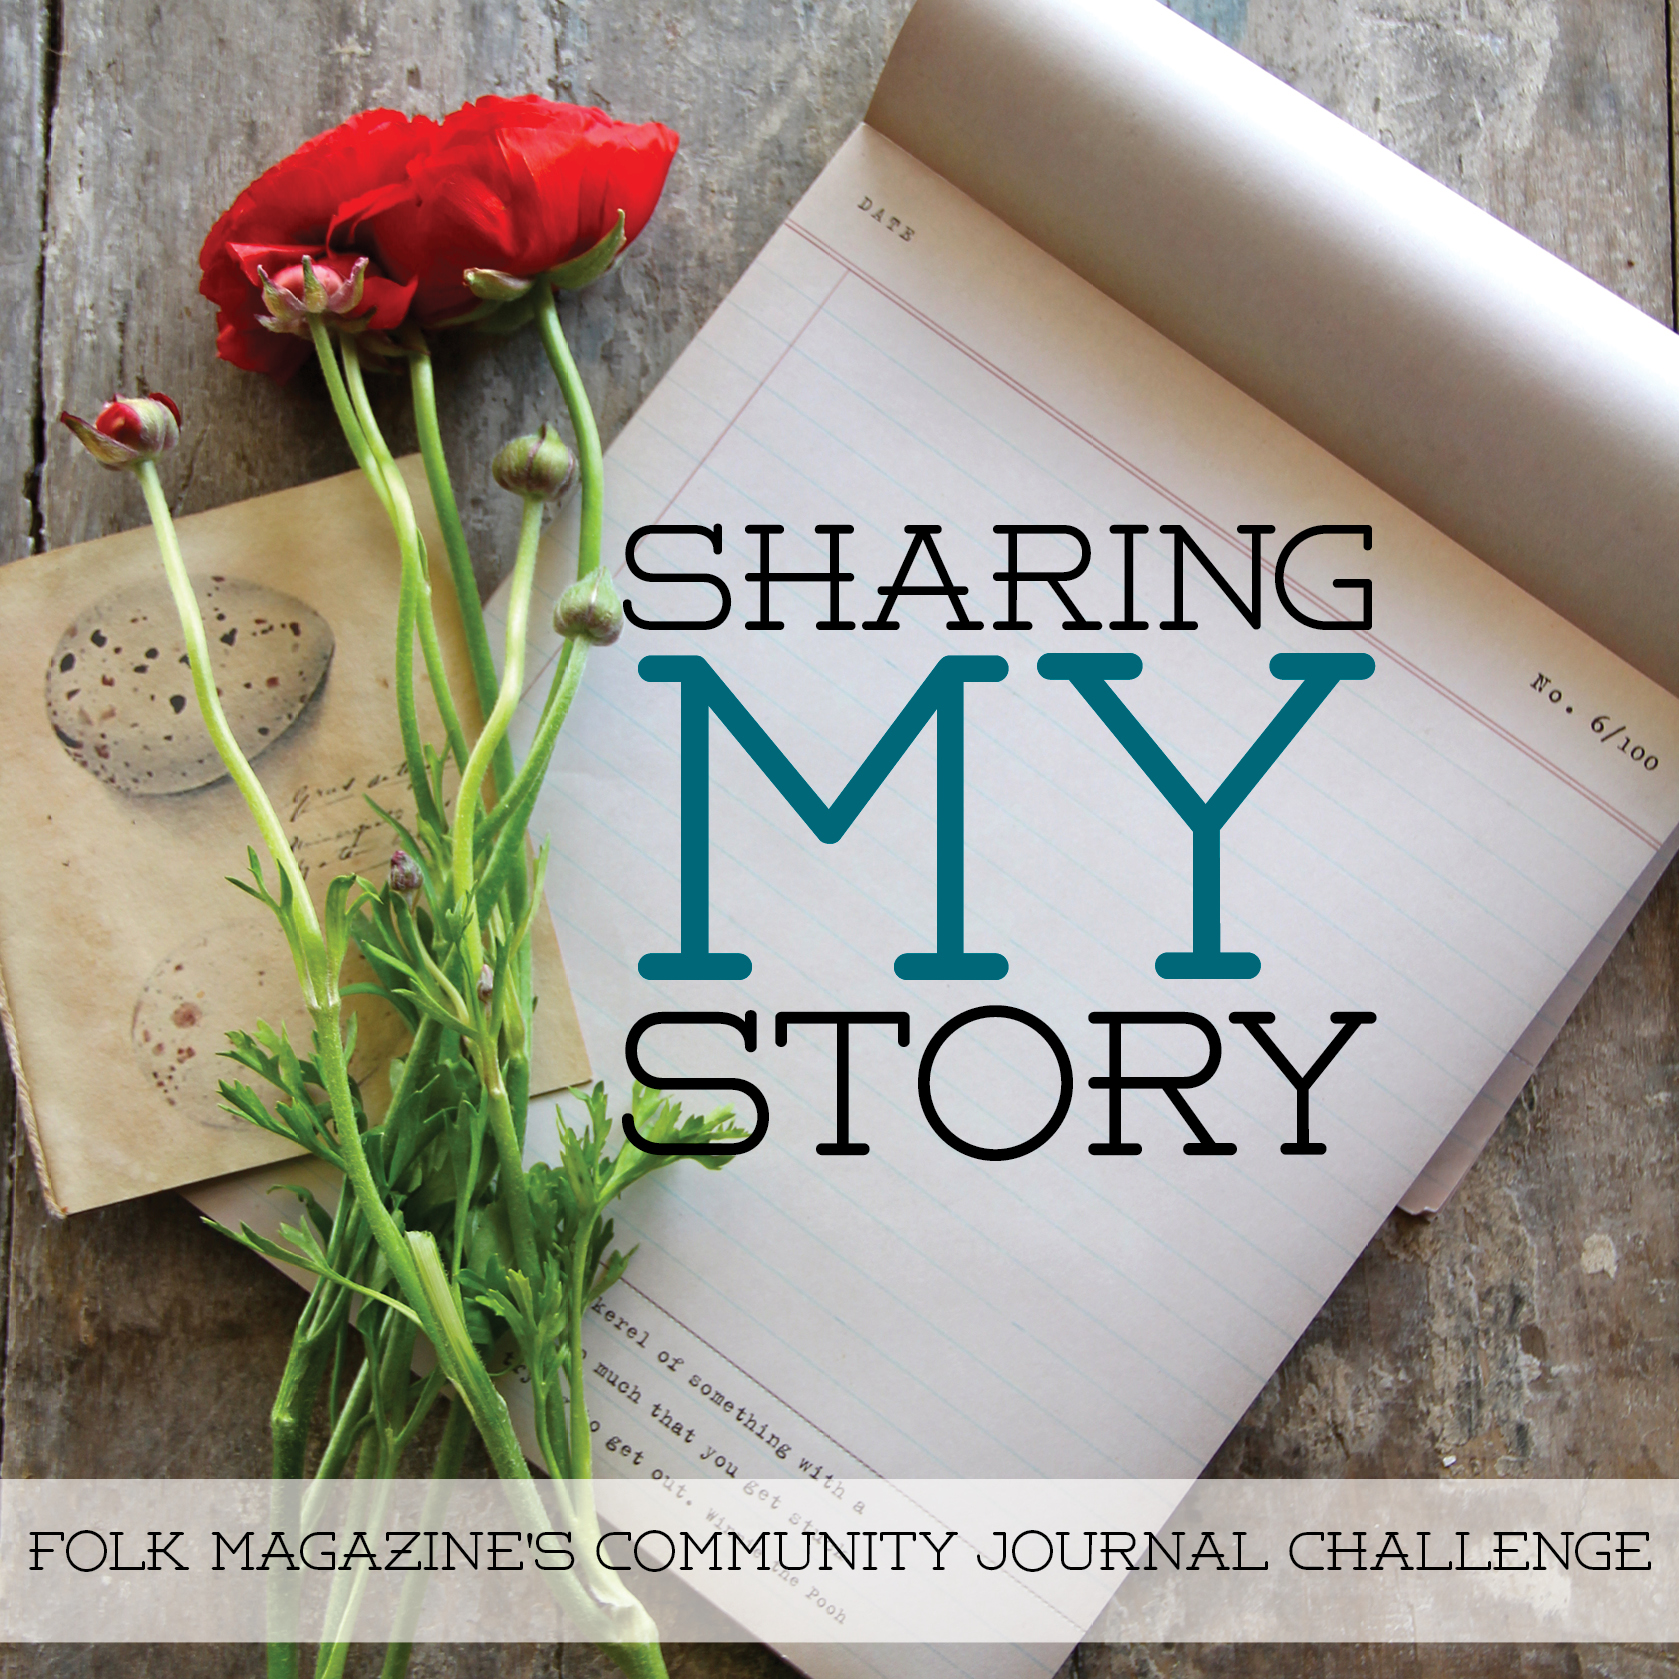 FOLK-sharemystory2